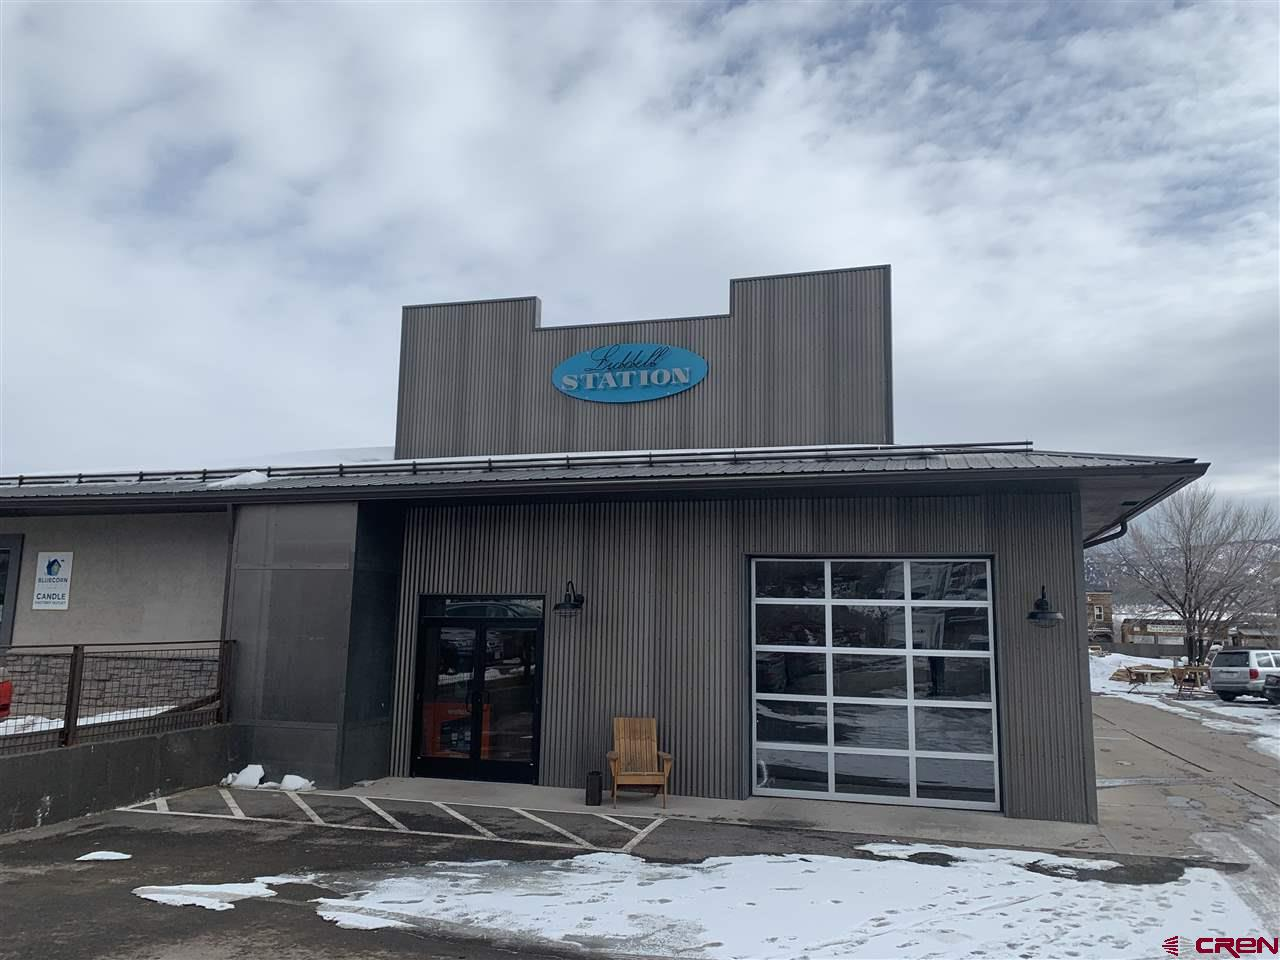 7735 square feet of Commercial improvements on a 21,736 square foot lot in downtown Ridgway.  The improvements have been recently remodeled and upgraded into one of the nicest buildings in Ridgway.  There are 4 separate Units with flexible potential for future use.  This is a prime location East of Liddell which could allow for cannabis based business. General Commercial zoning will allow for multiple uses (check Town of Ridgway land use). Buyer to verify with Town of Ridgway as to any potential desired use.